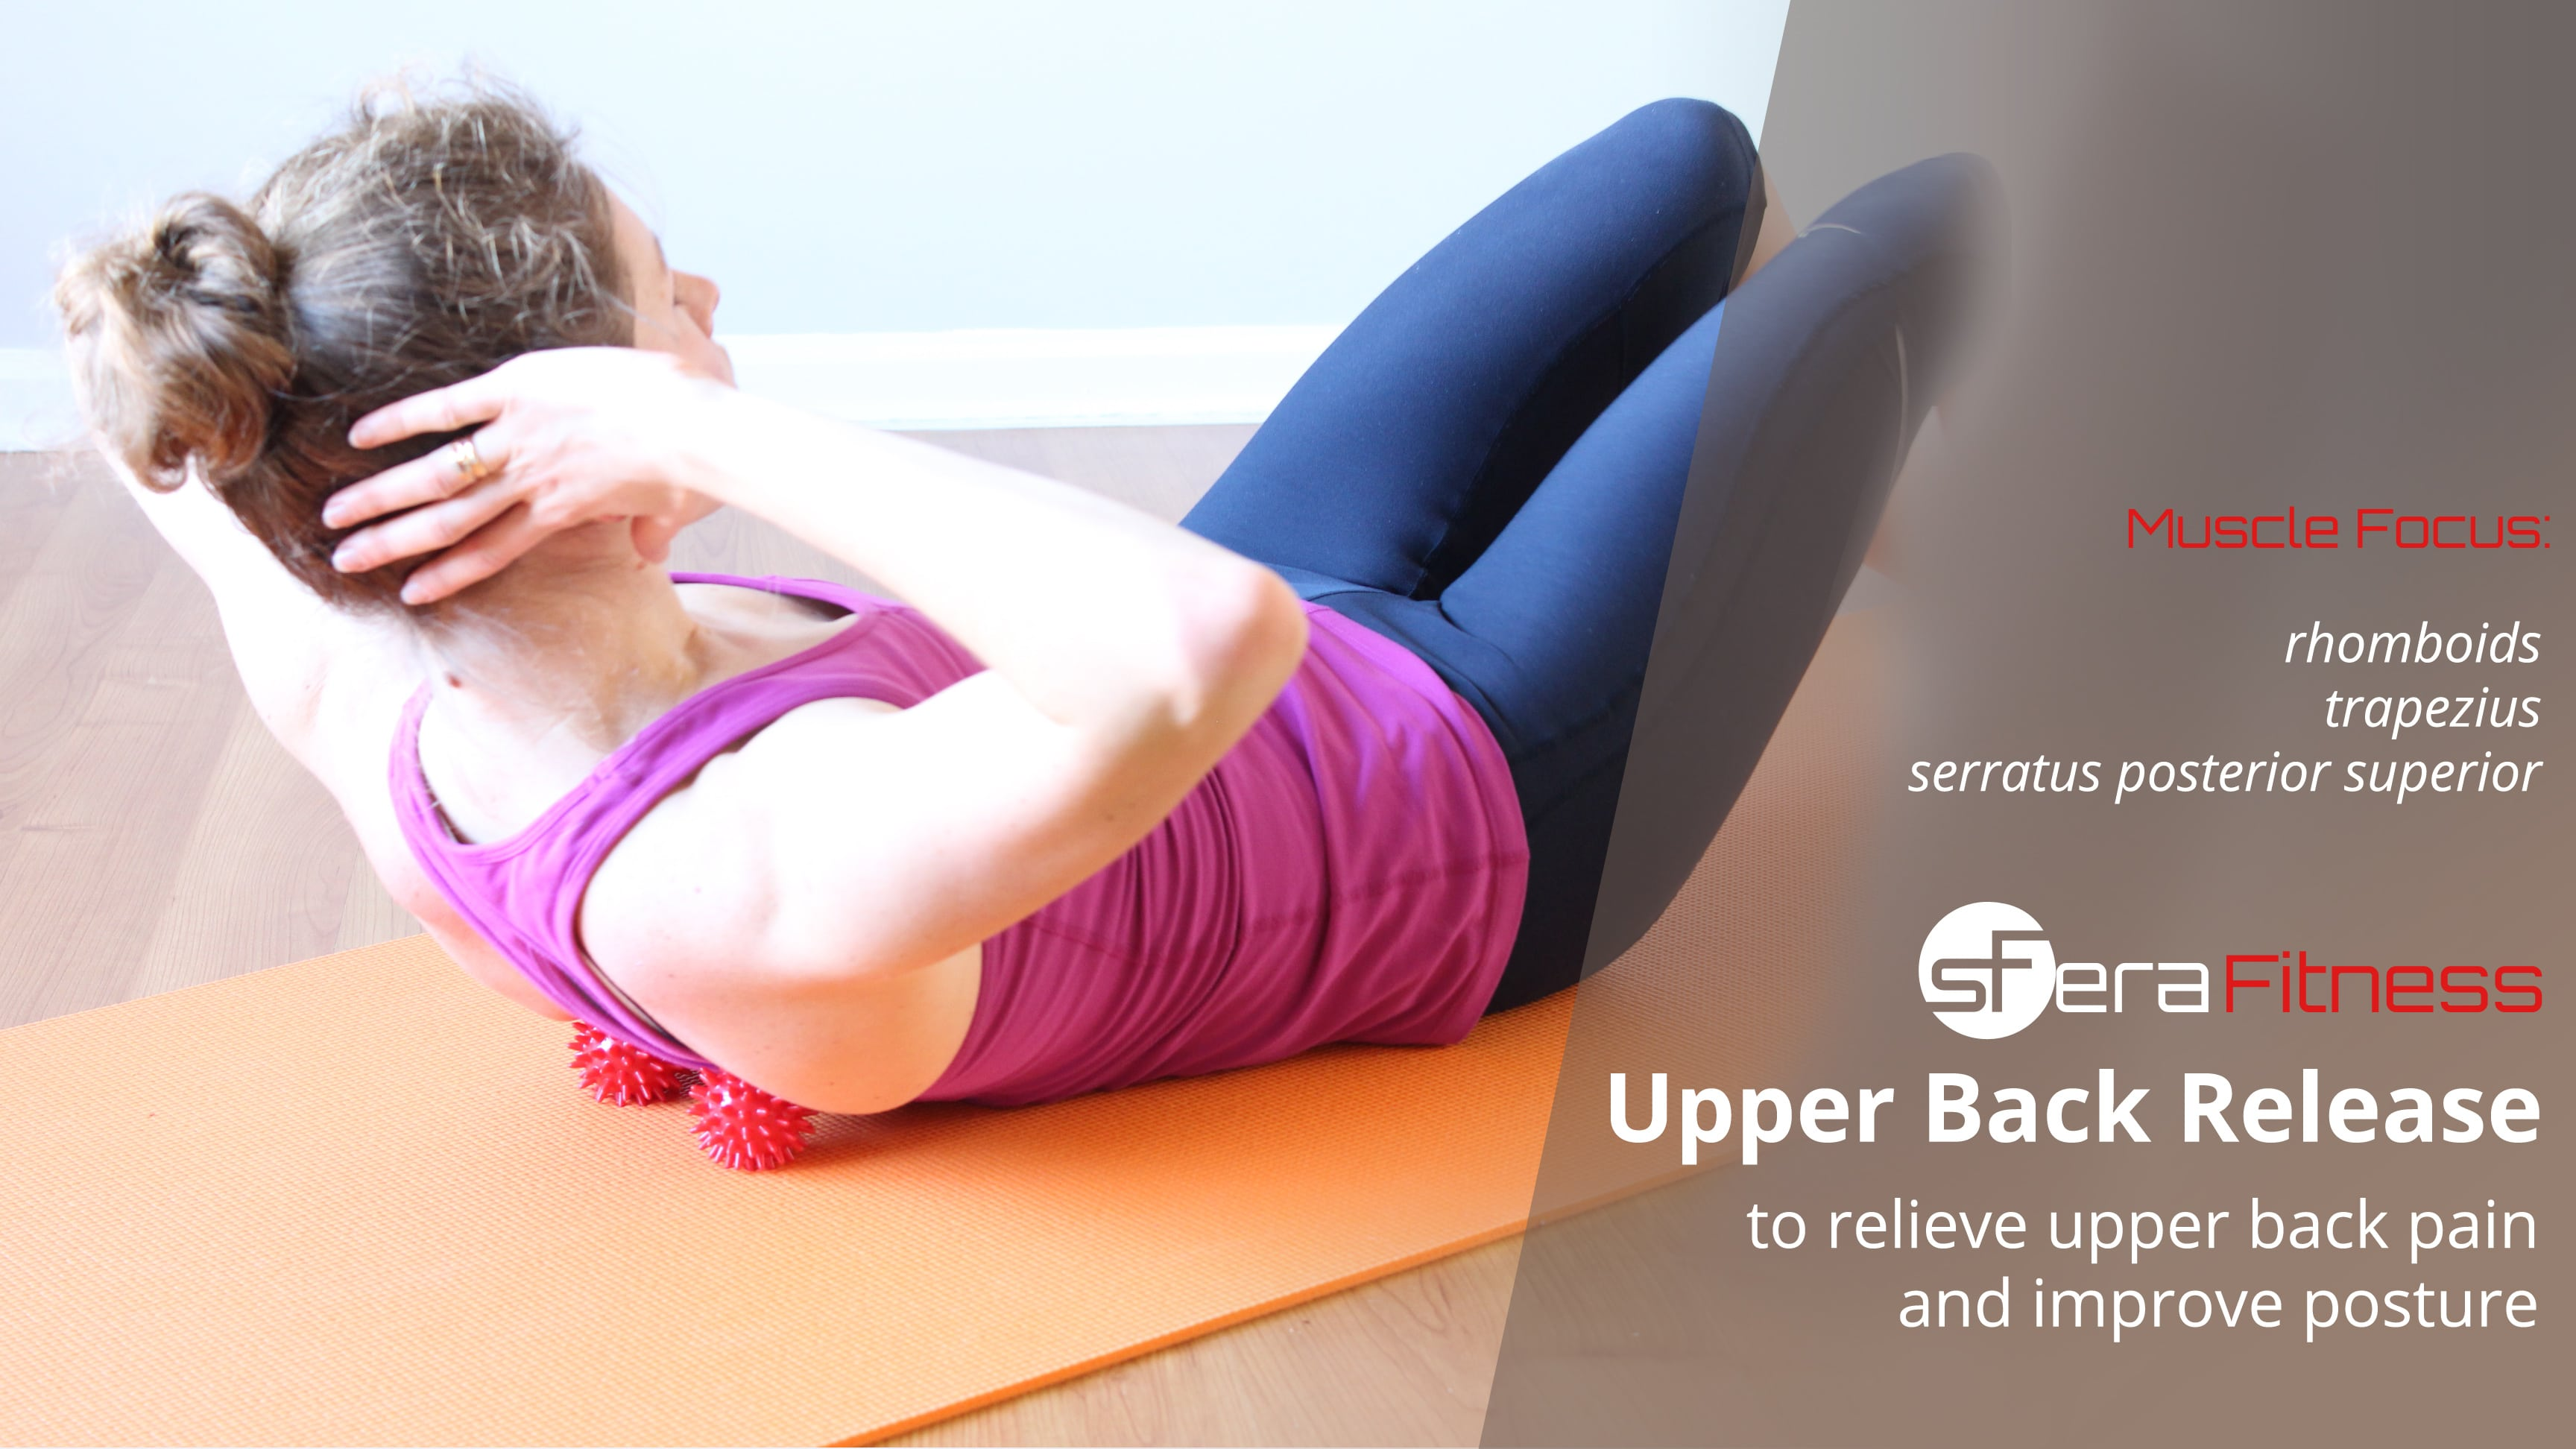 Upper Back Pain Relief Using Trigger Point Release